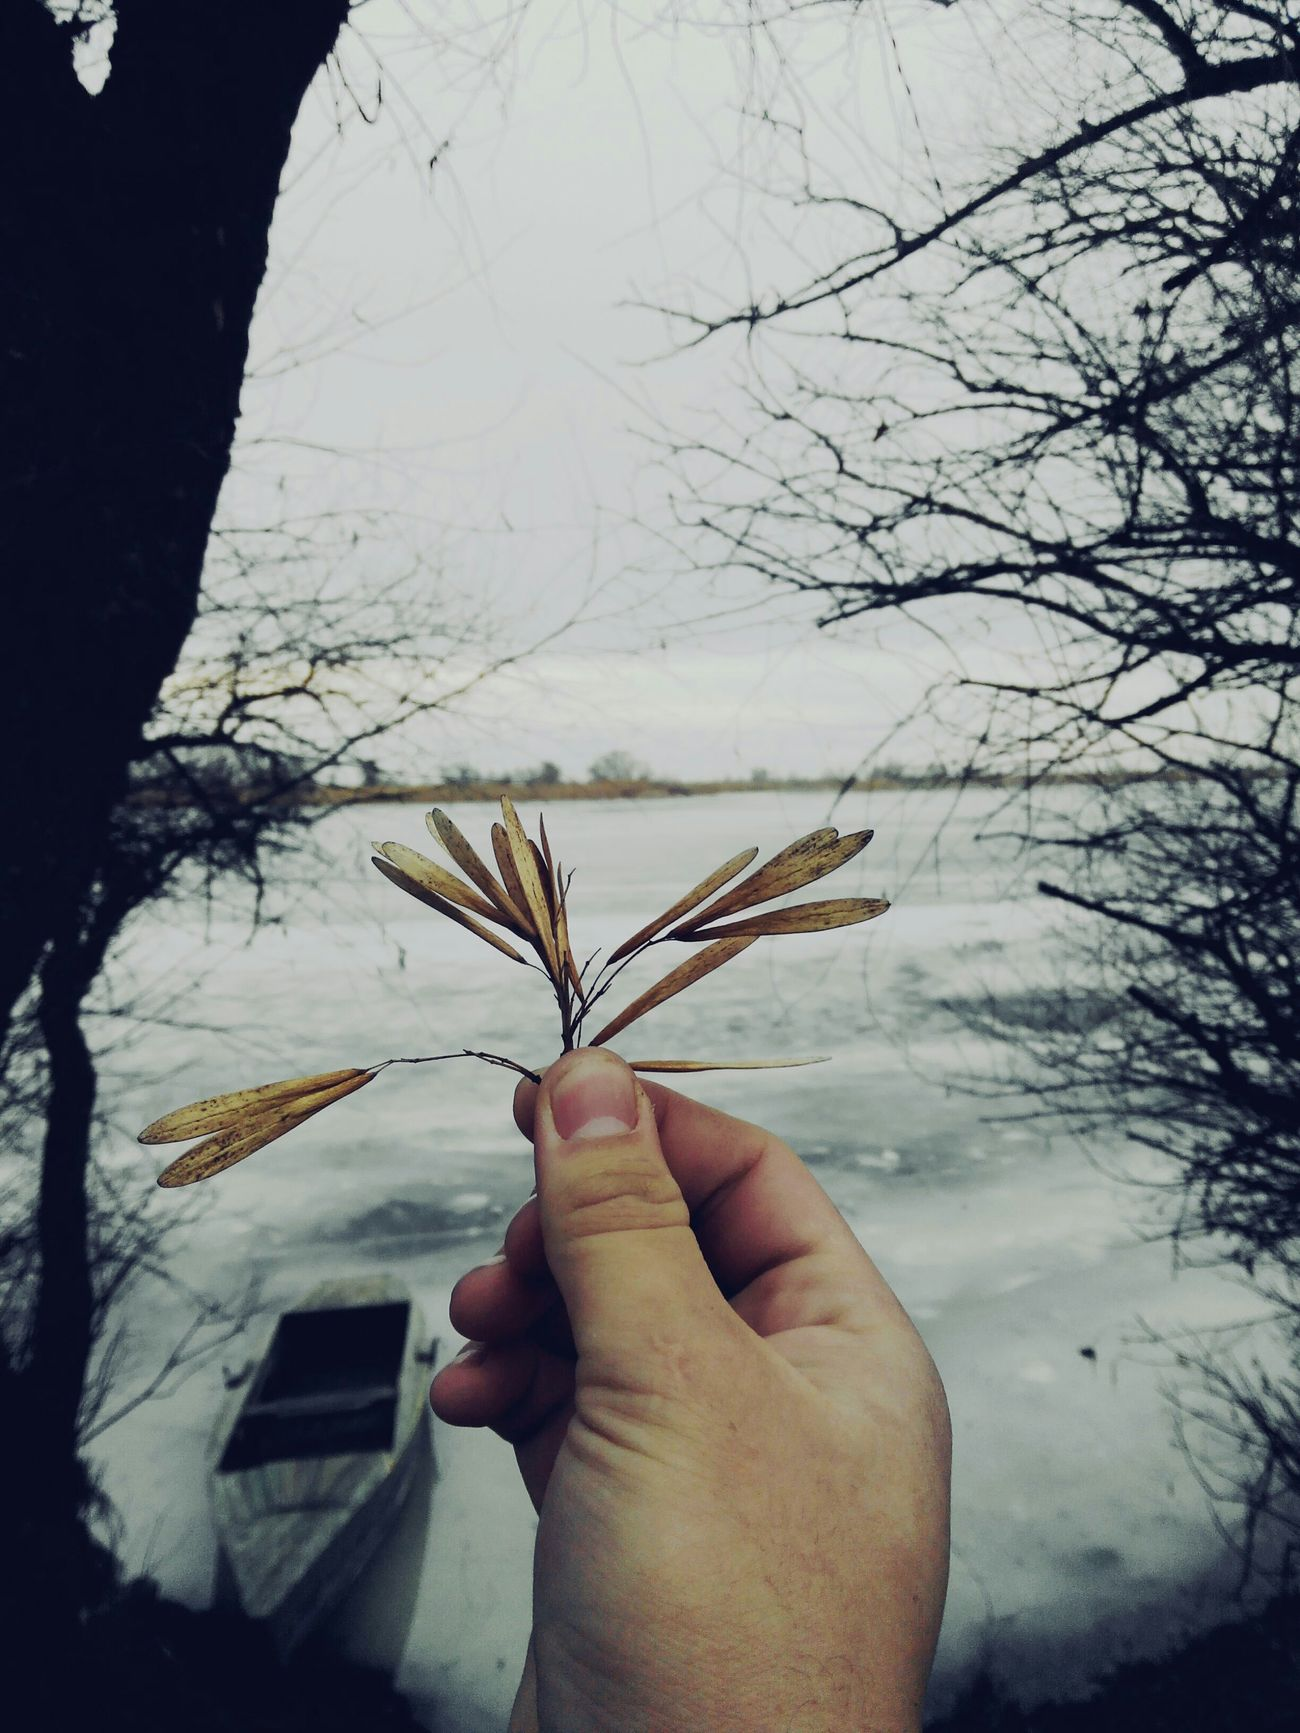 And peace... The Whole World In My Hands Winter Nature Biutiful